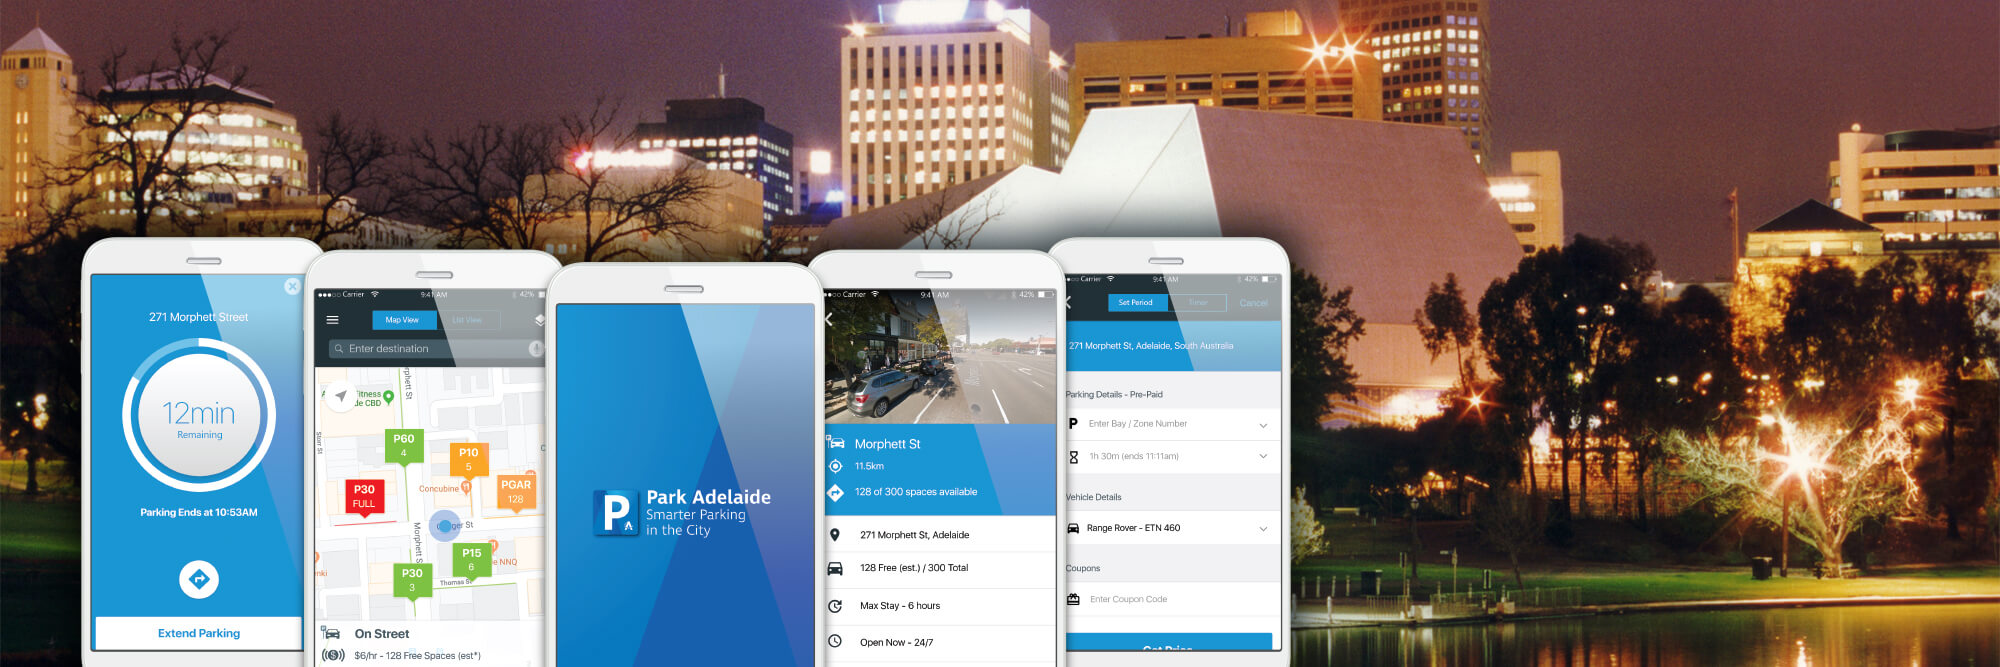 Park Adelaide, the IoT smart city parking app, has been launched